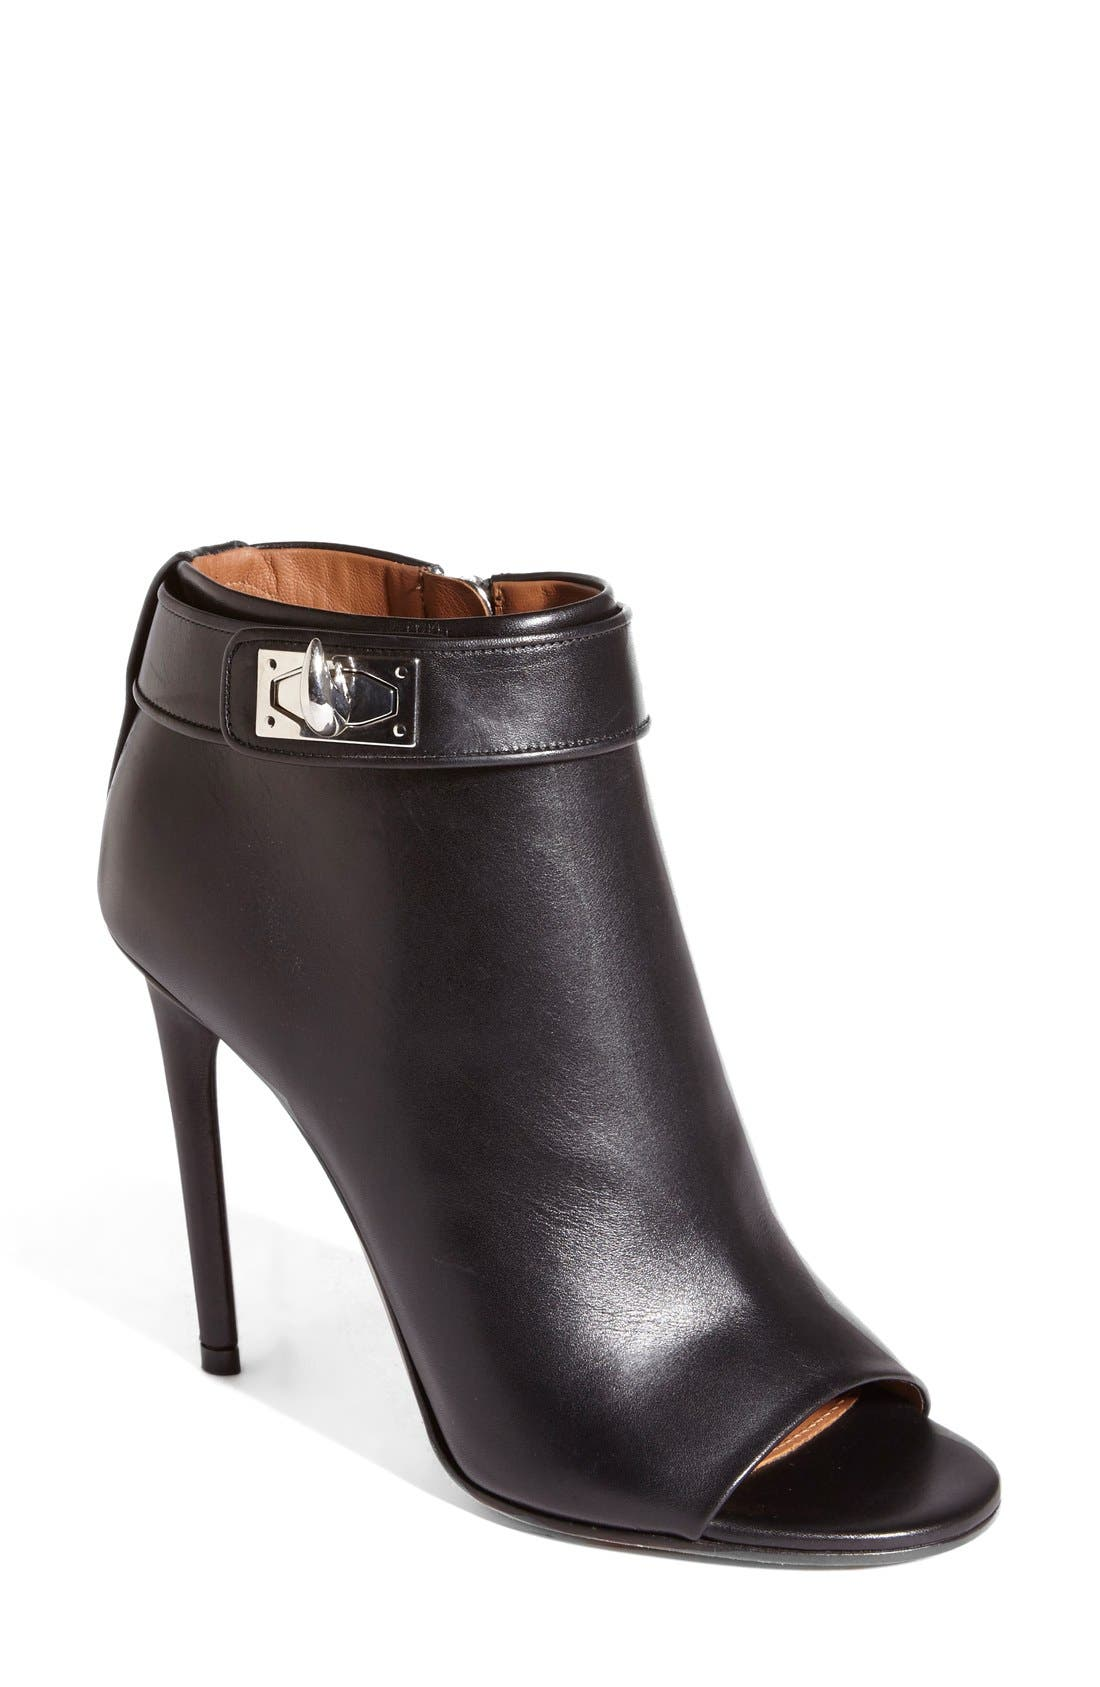 GIVENCHY 'Ryka' Shark Tooth Open Toe Bootie, Main, color, 001